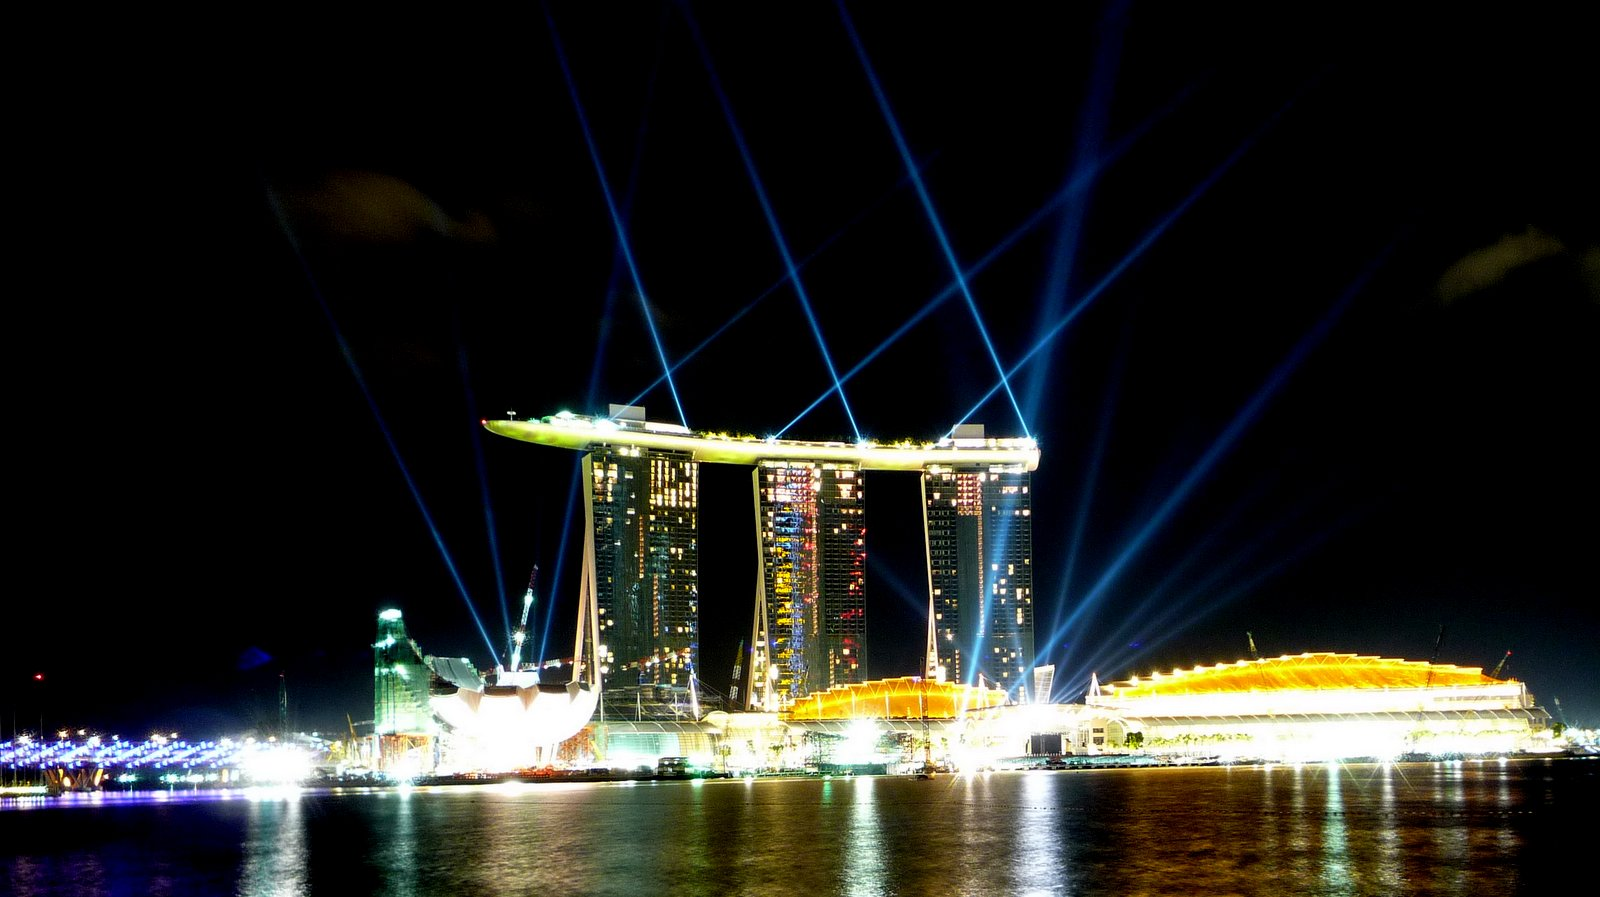 Marina bay sands urban architecture now for Marina bay sands architecture concept